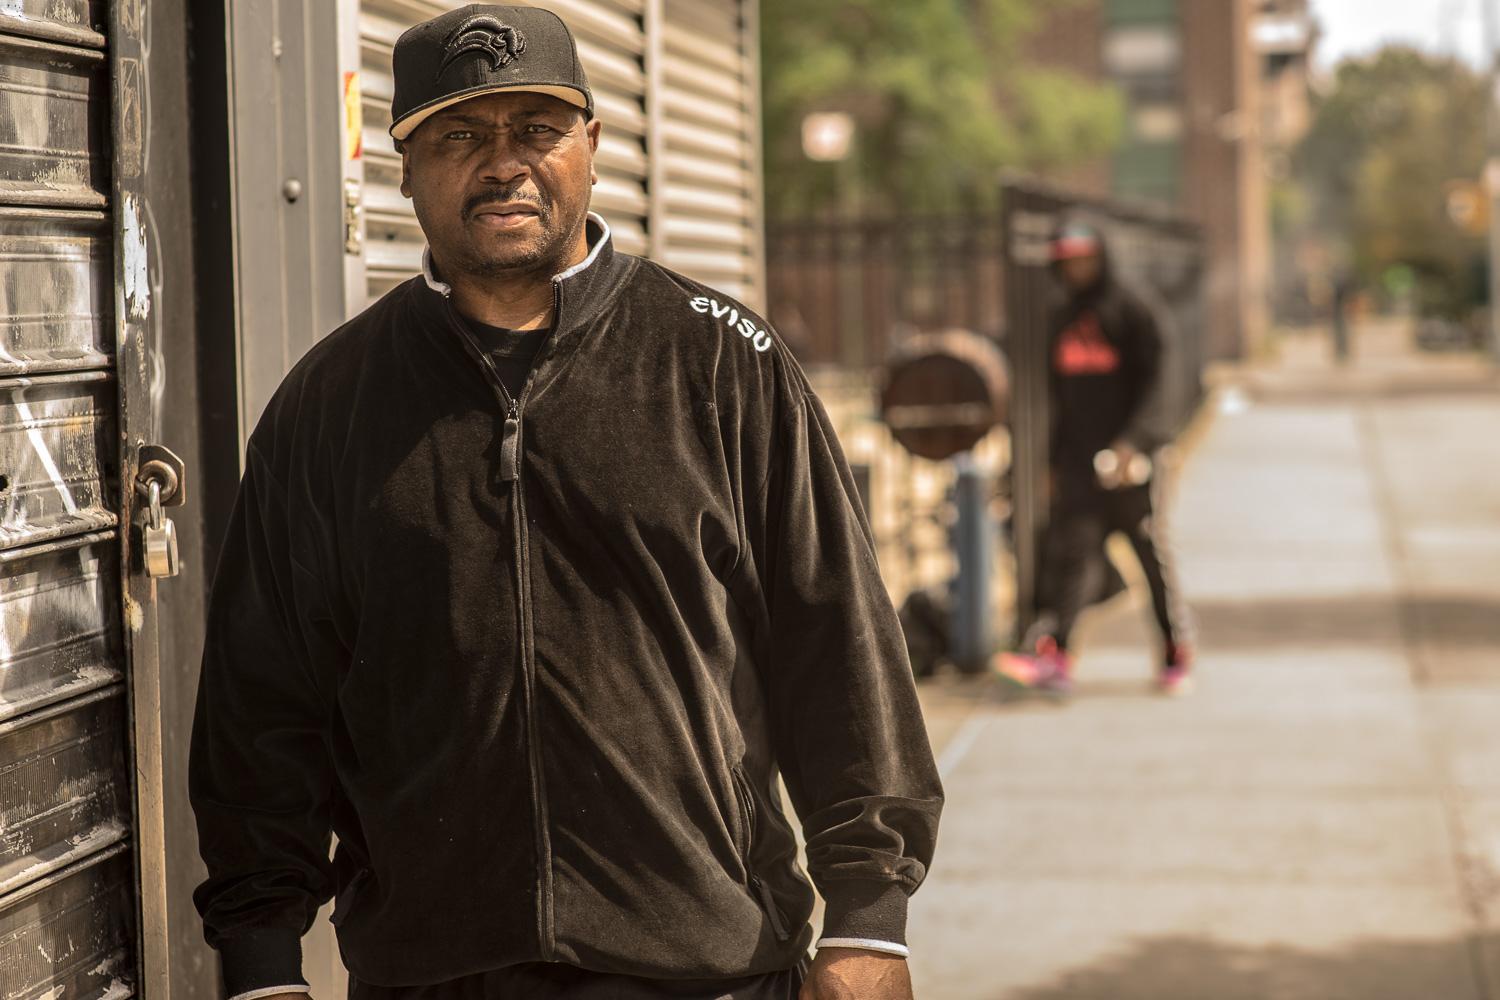 """""""I've been here 35 years"""", says Nate Boyd (50) in a resonant, strong voice. Nate, who lost his son to gun violence on the streets of Bedstuy, trains youth at the Bedstuy boxing gym 6 days a week, all year long. He does this for no financial reward."""